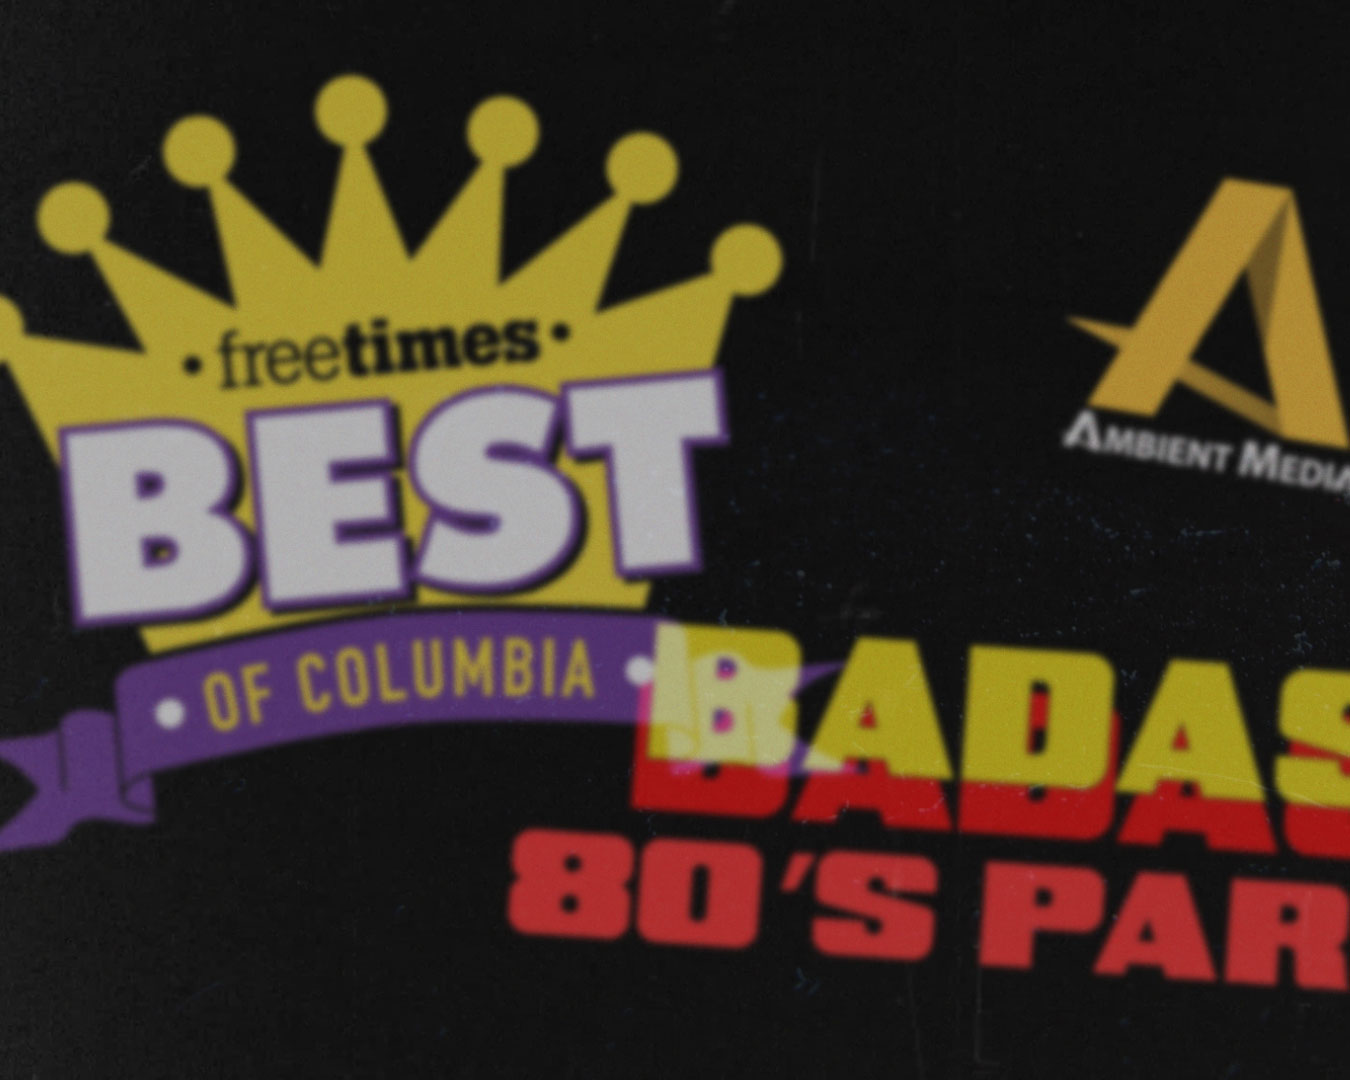 FreeTimes 2017 Best of Columbia Retro Video